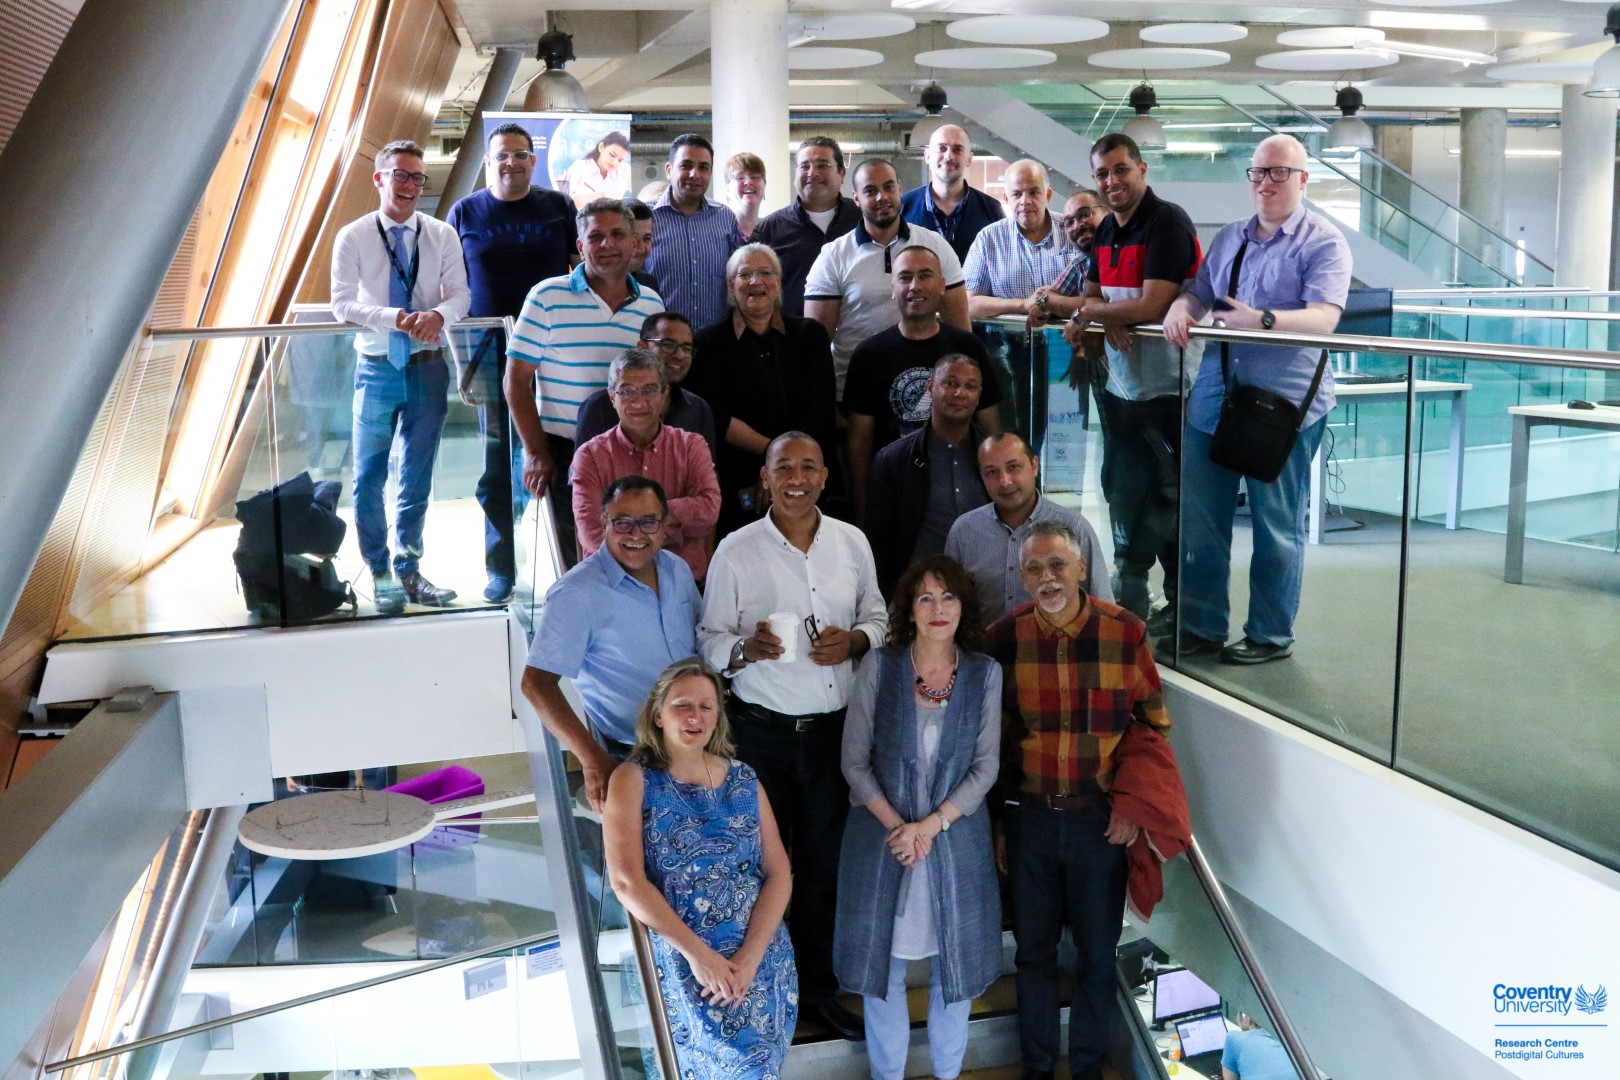 Third Train the Trainers week held at Coventry University, 8-12 July 2019 (England)